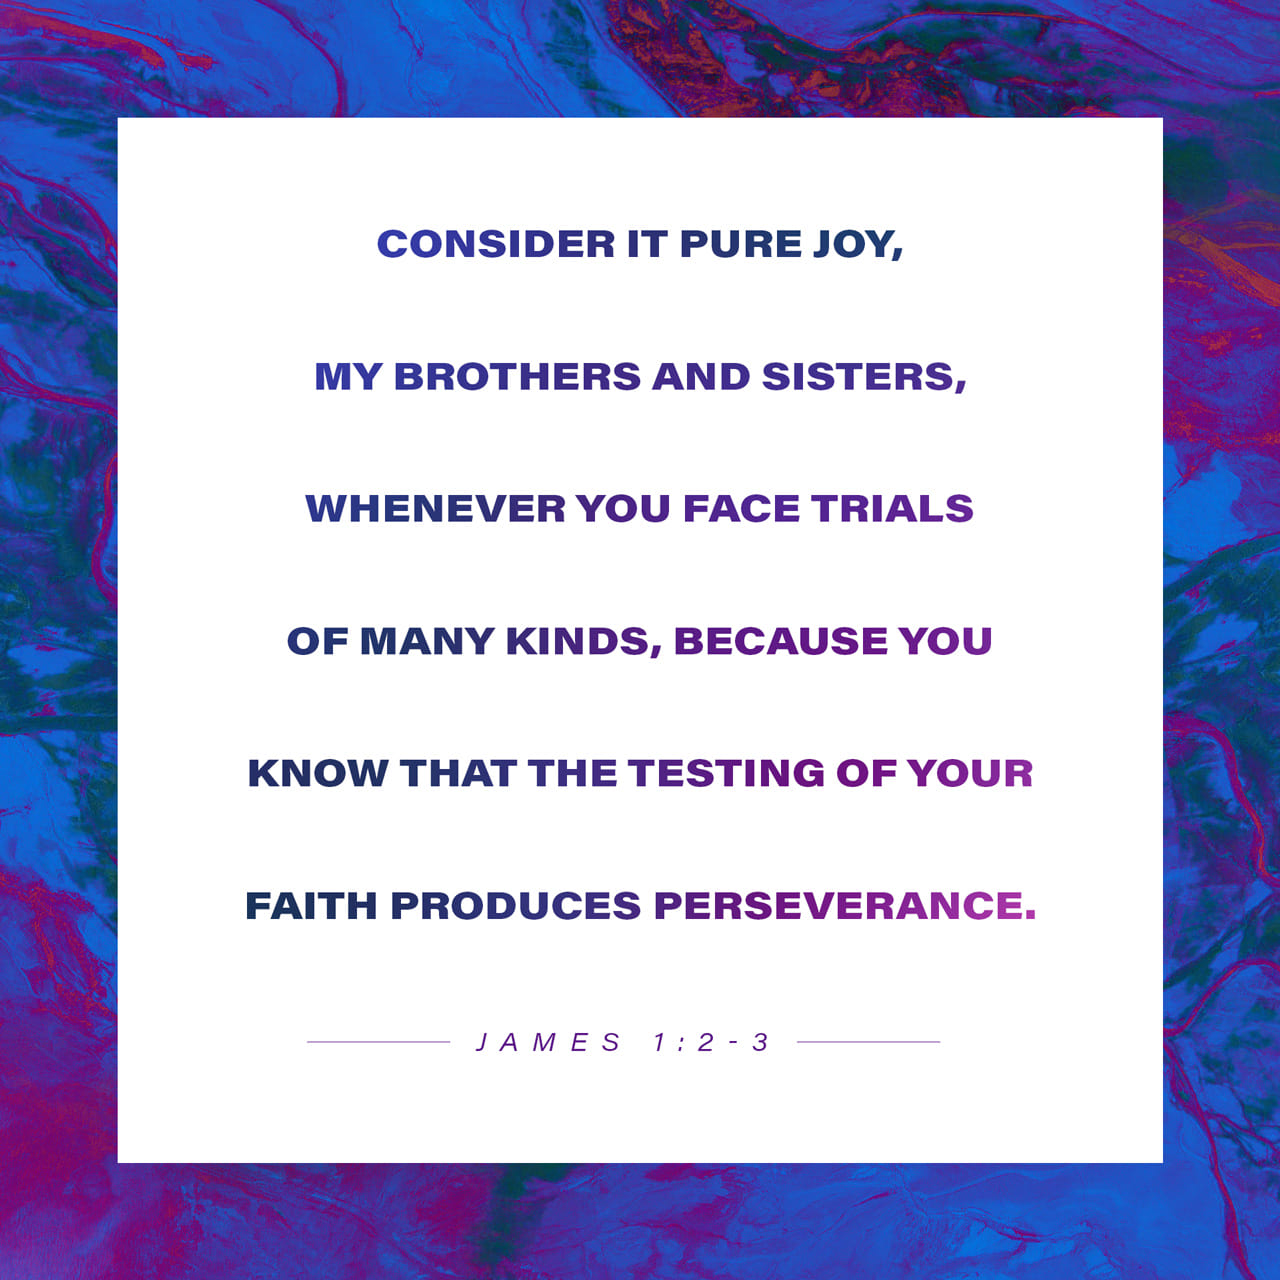 James 1:2-3 My brethren, count it all joy when ye fall into divers temptations; Knowing this, that the trying of your faith worketh patience. | King James Version (KJV)